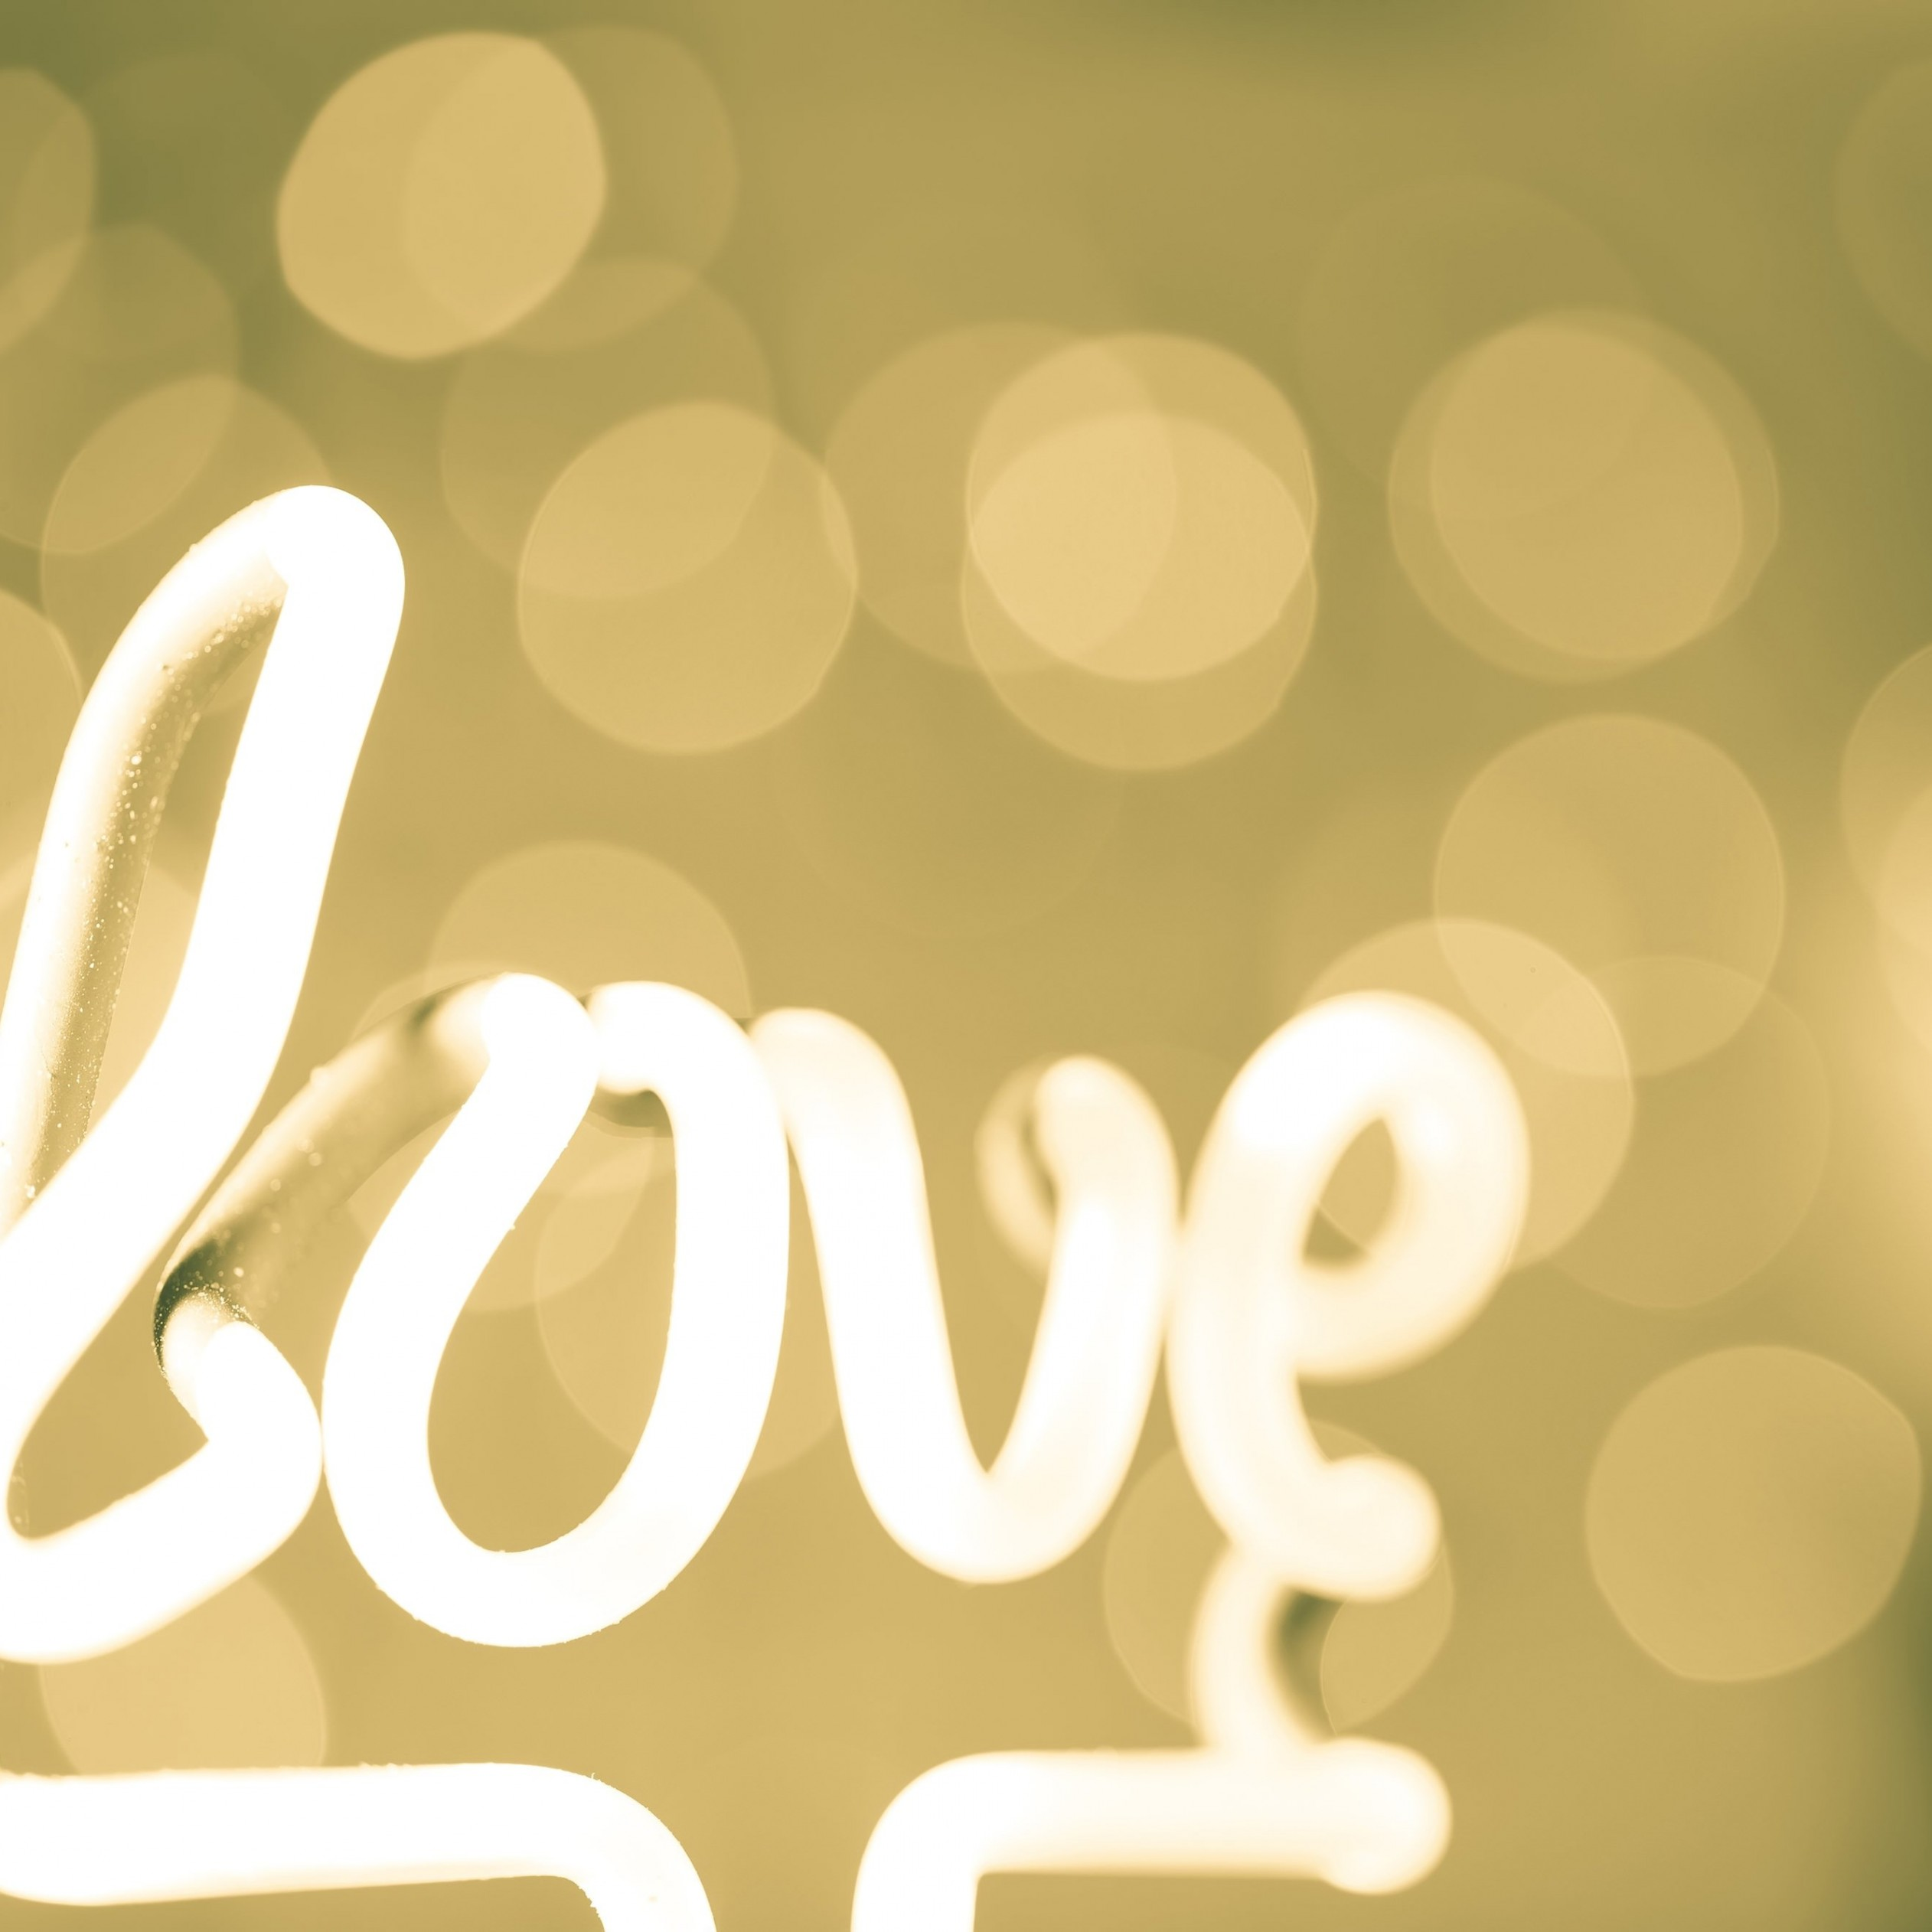 Love Neon Light Typography Wallpaper for Apple iPad 3